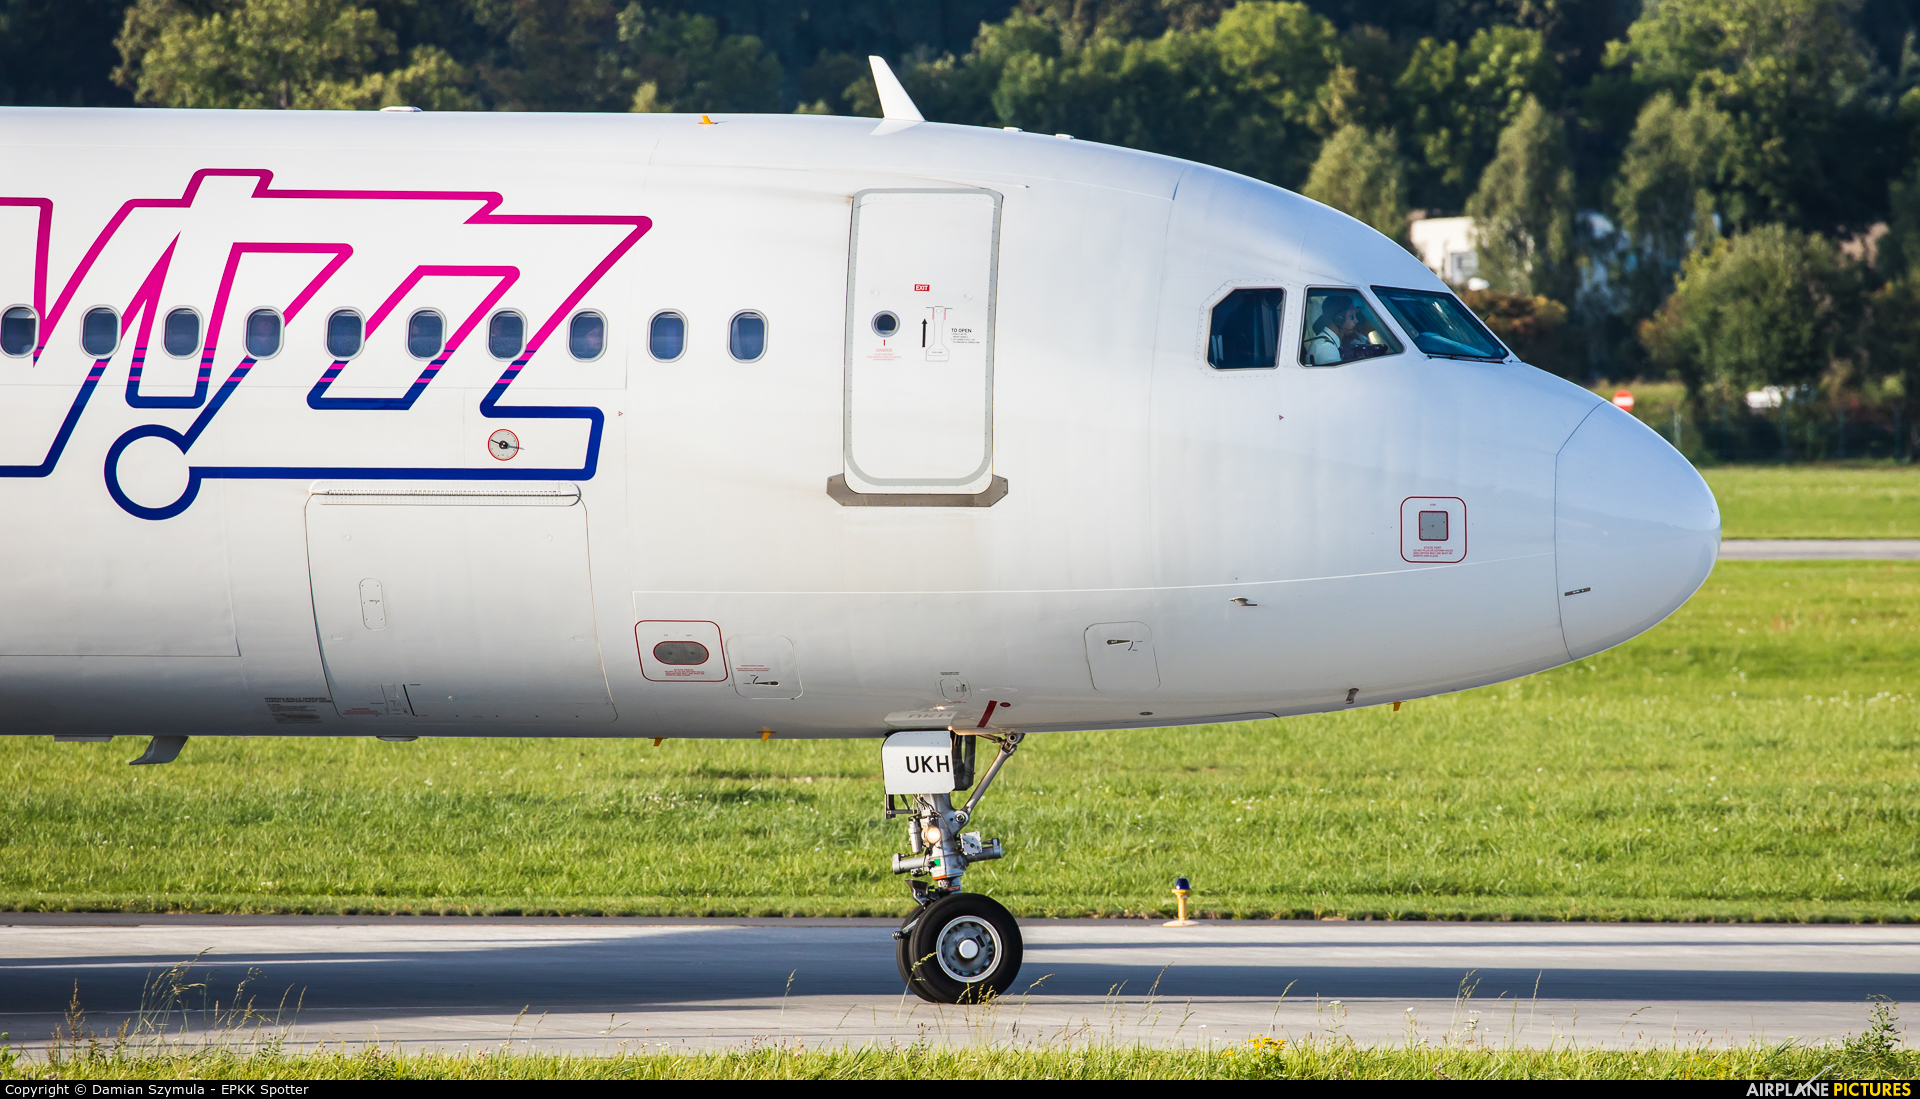 Wizz Air UK G-WUKH aircraft at Kraków - John Paul II Intl